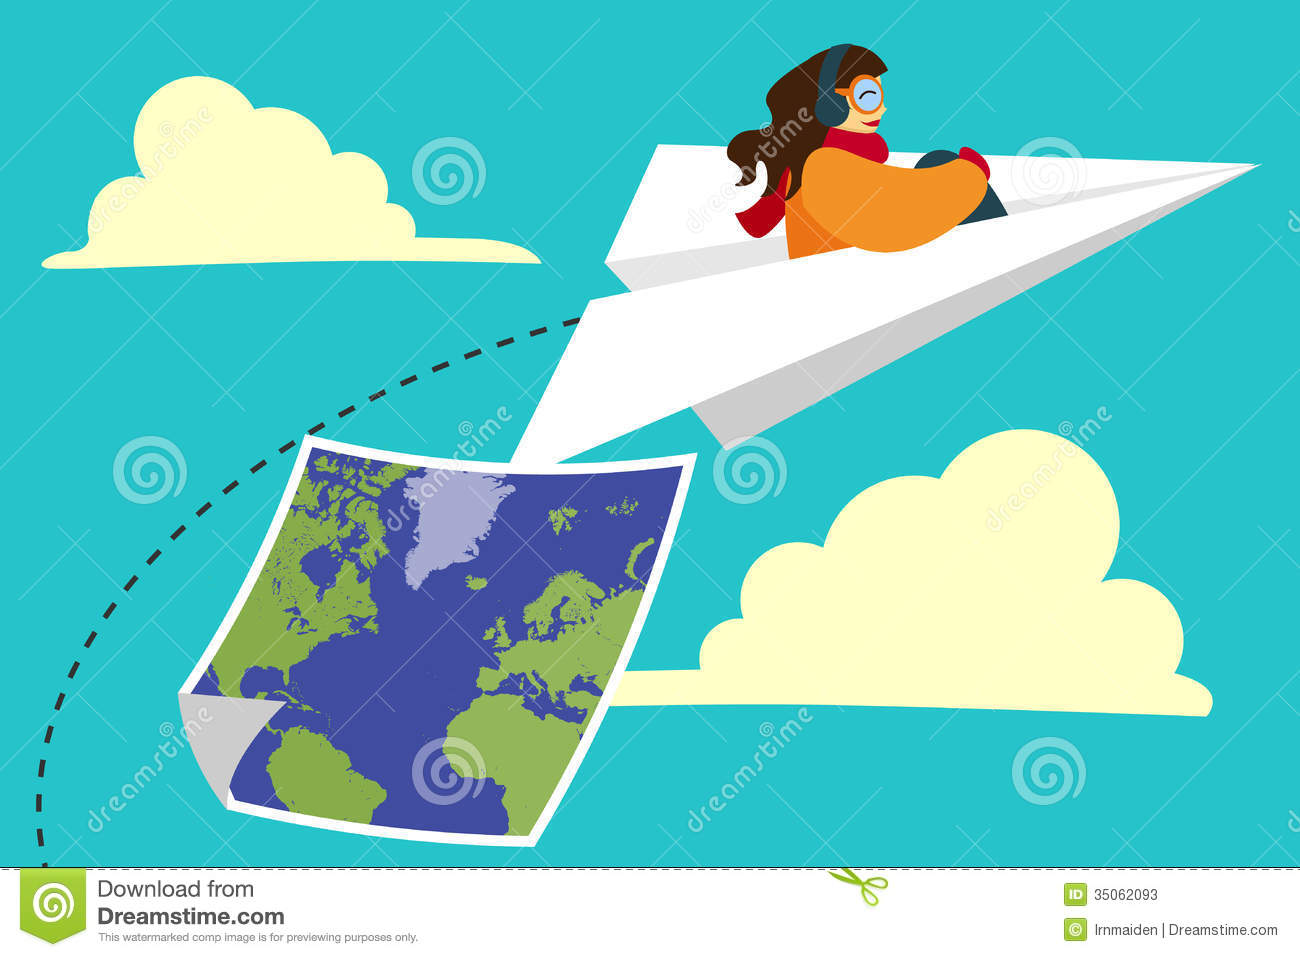 a journey by plane essay 419 words essay on my first flight by aeroplane article shared by my father  took us on a pleasure trip to katmandu, the capital of nepal we went by air.